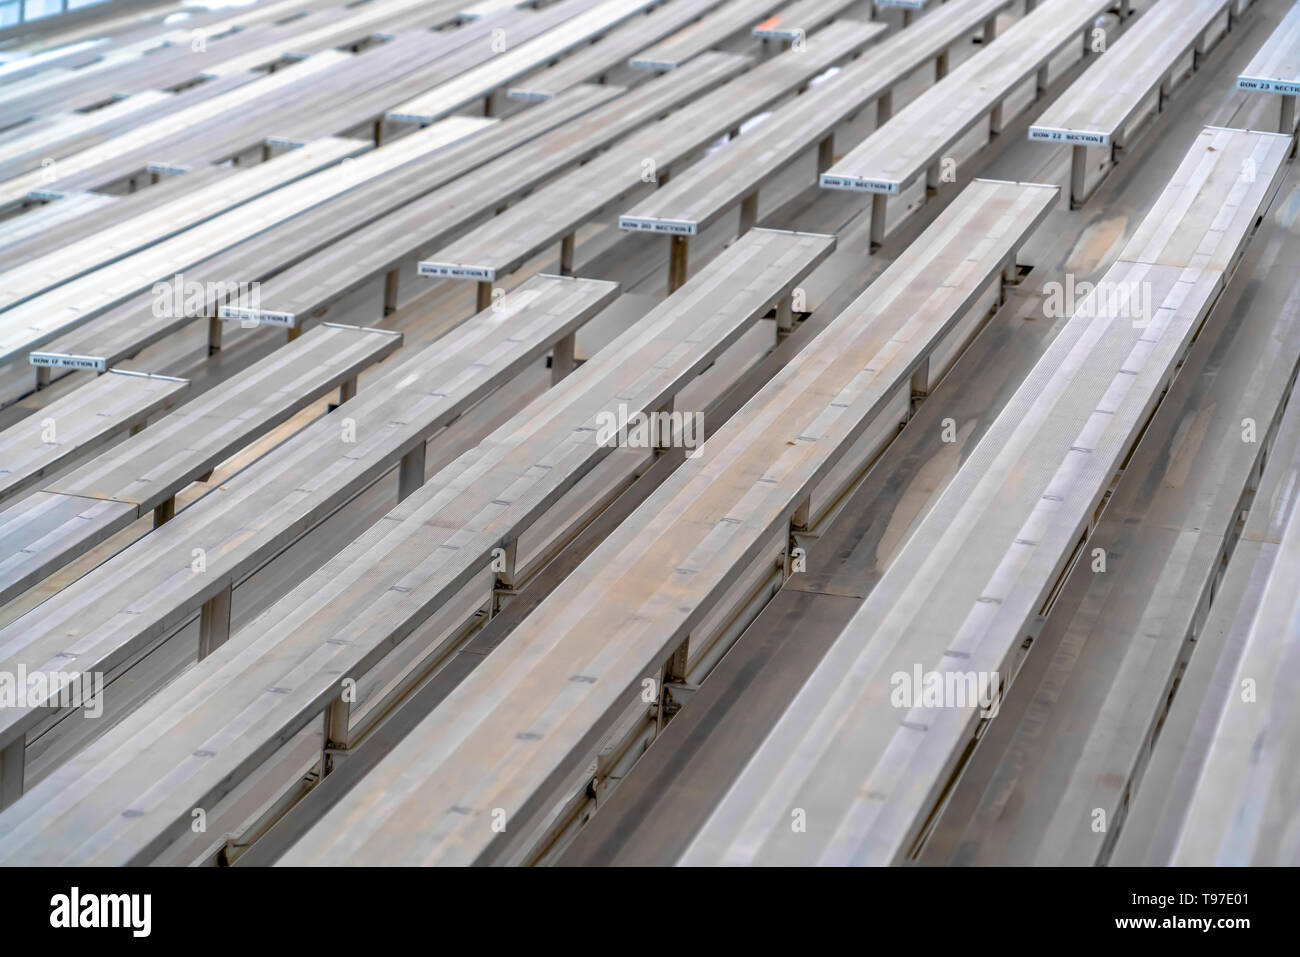 Close up of tiered rows of benches at a sports field viewed on a sunny day. - Stock Image